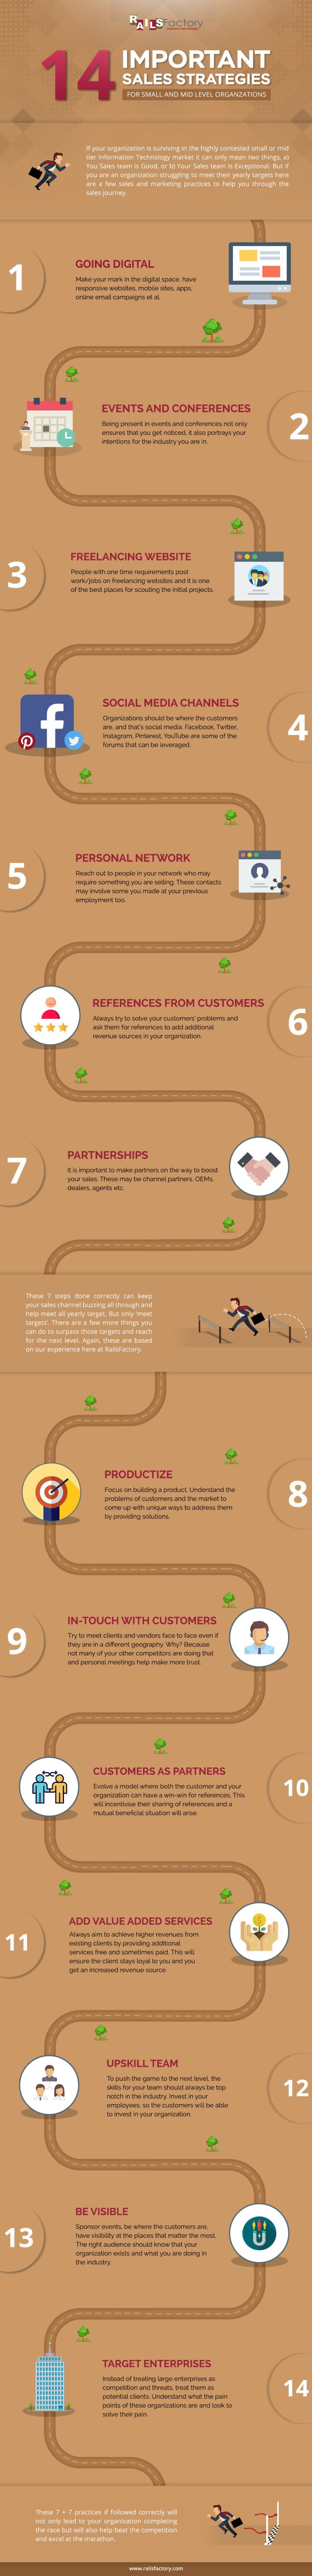 Important Sales Strategies for Small & Mid Level Organizations Infographic